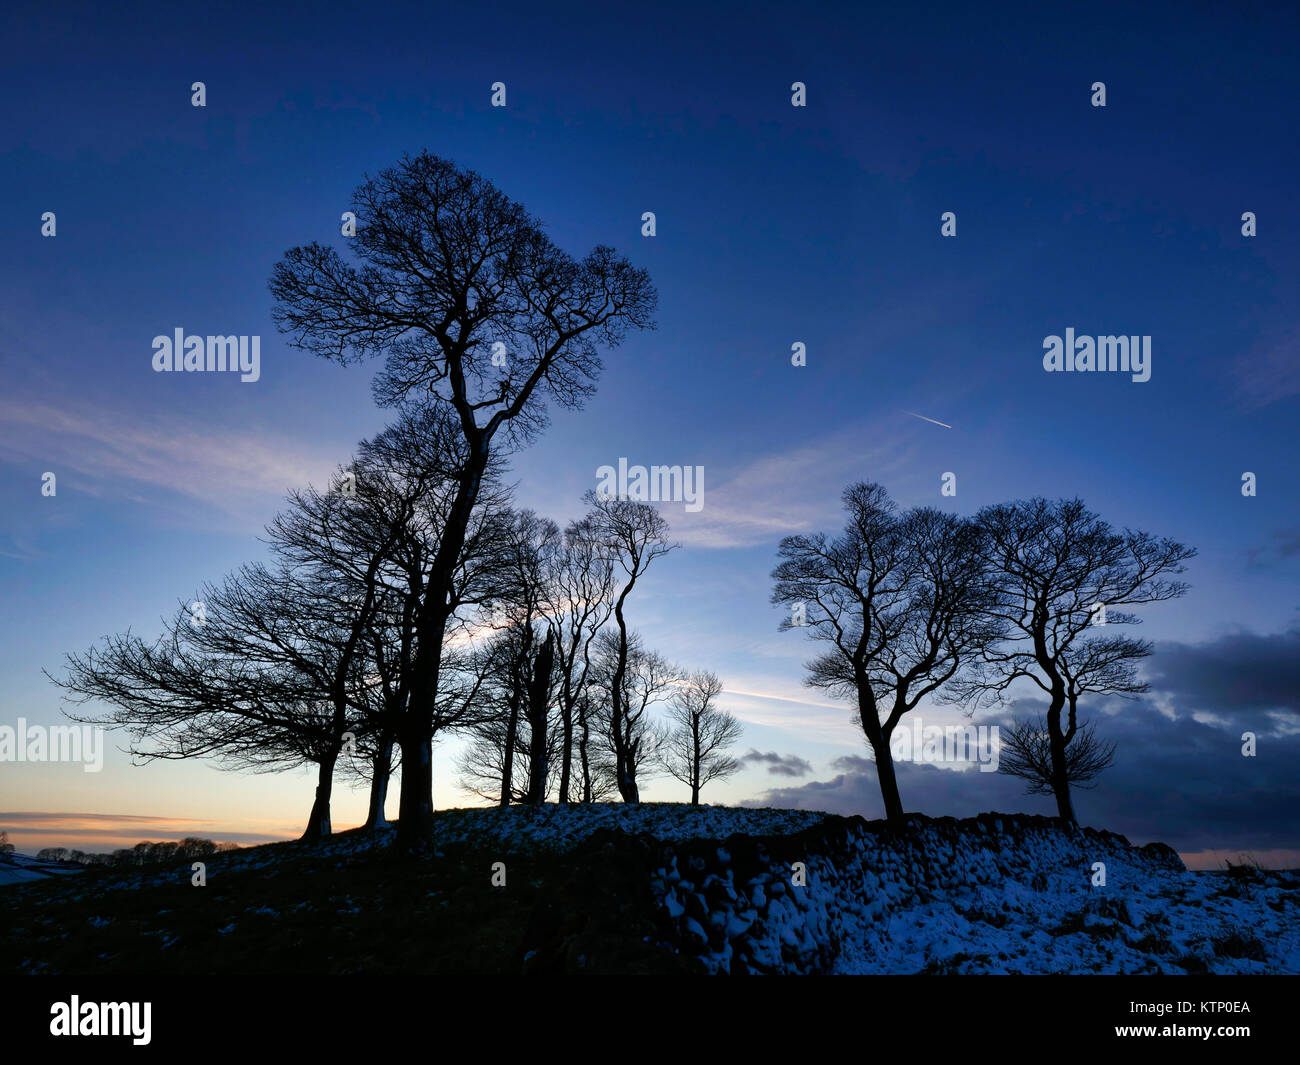 Moat Low, Derbyshire. 28th Dec, 2017. UK Weather: Moat Low Derbyshire spectacular sunset over the snow capped Bronze Age Round Barrow near Tissington in the Peak District National Park Credit: Doug Blane/Alamy Live News Stock Photo